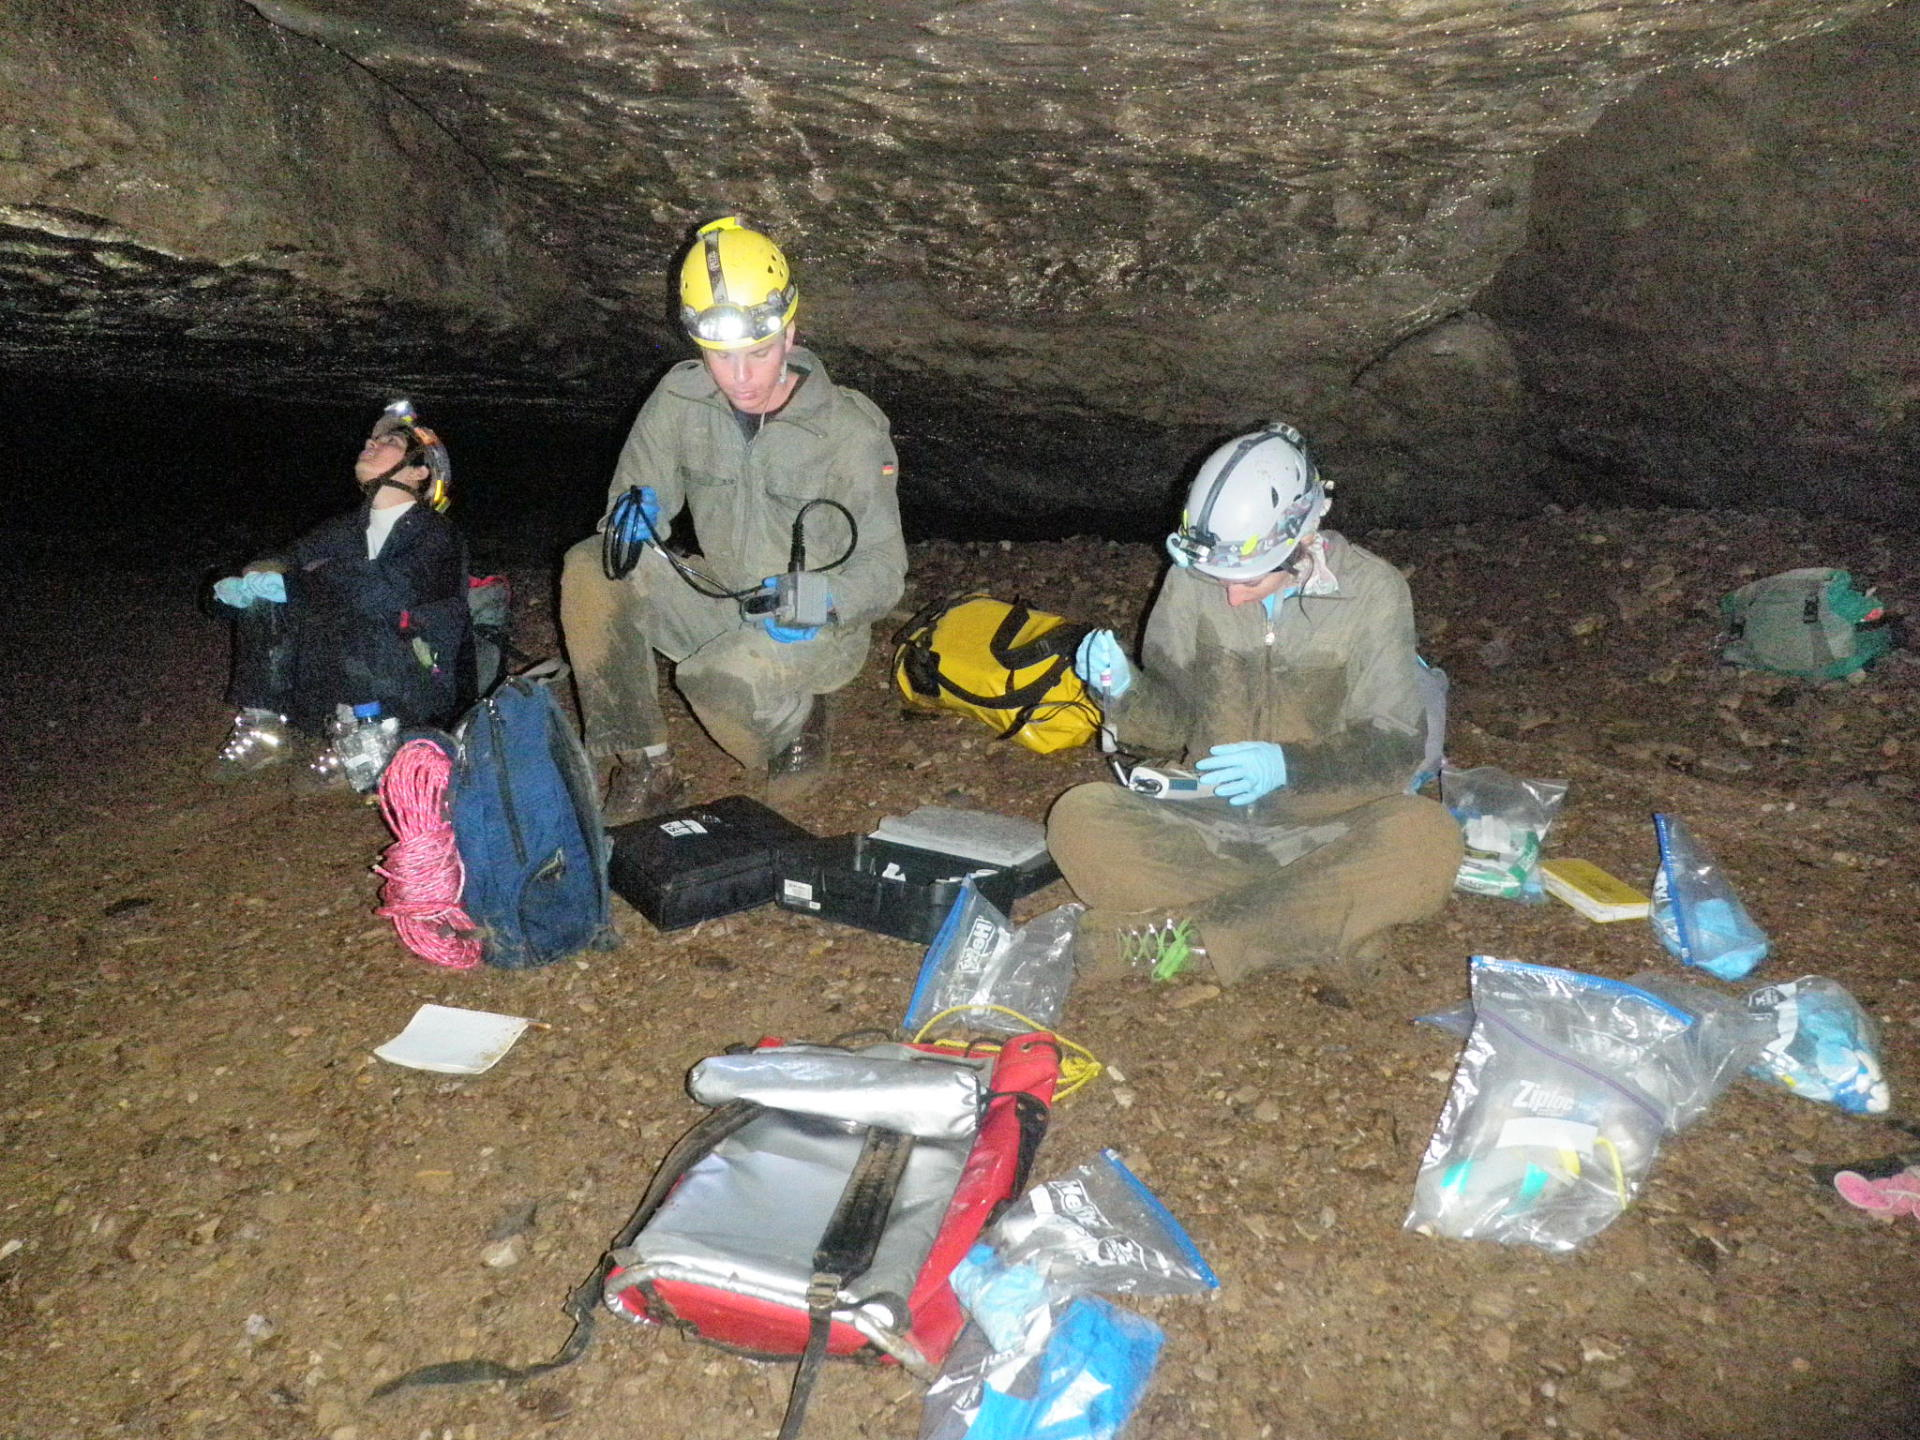 Caving & field gear